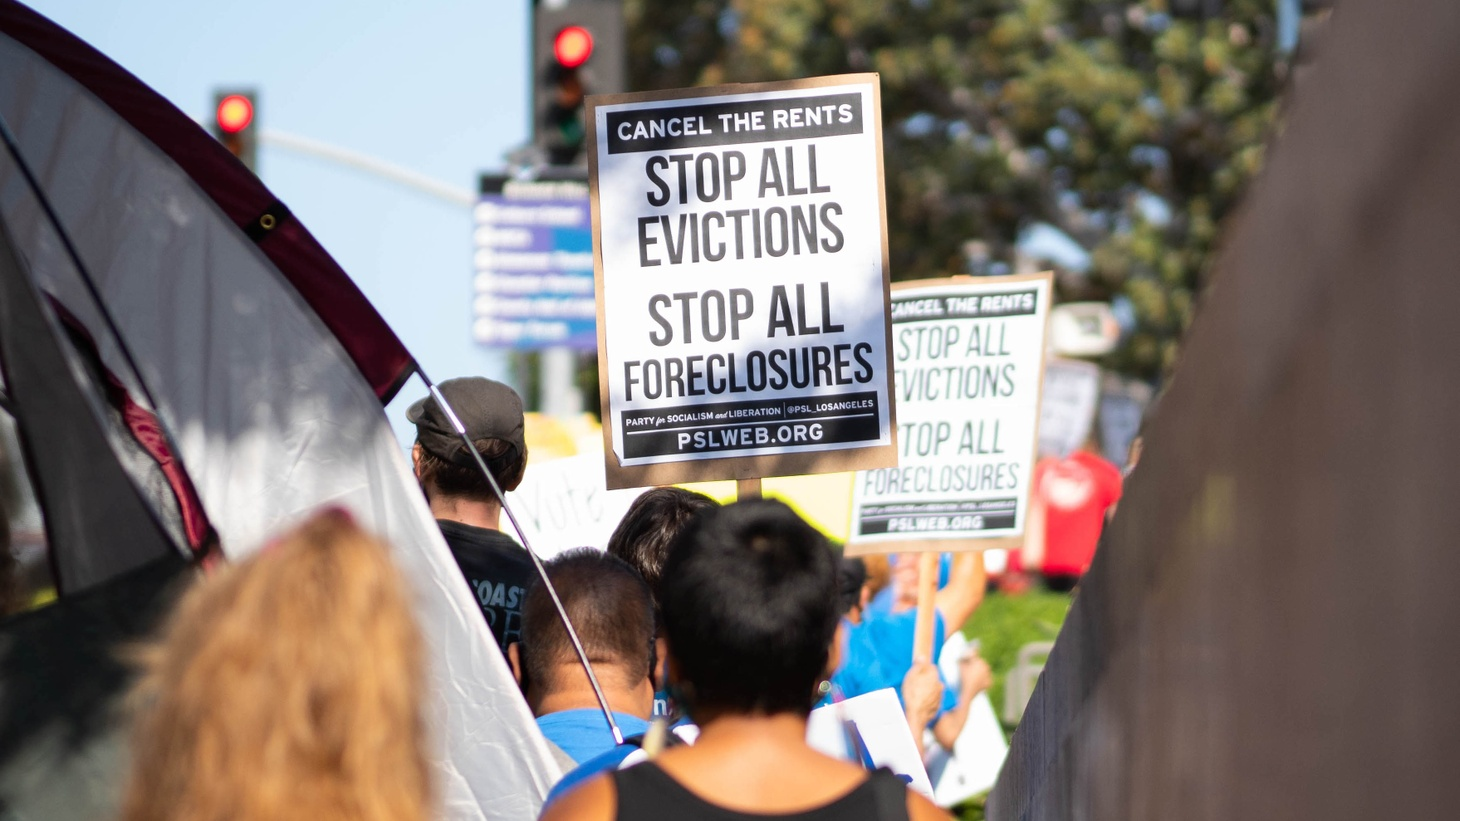 Tenants and organizers demonstrate outside Stanley Mosk Courthouse in downtown Los Angeles early September, calling for a ban on evictions and the cancellation of rent ahead of a looming eviction crisis caused by the COVID-19 pandemic.